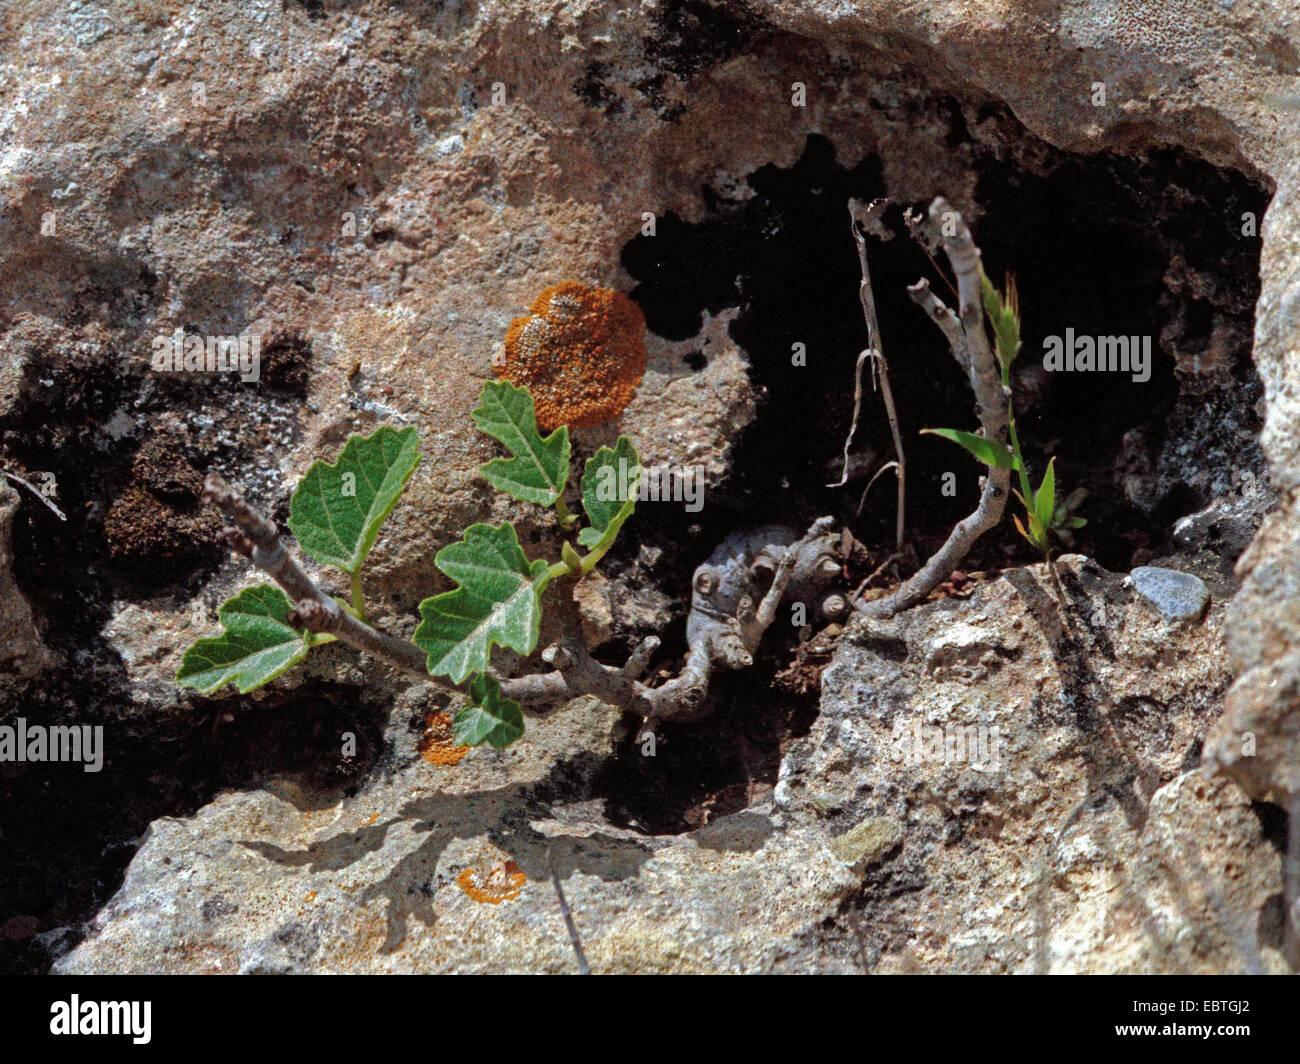 edible fig, common fig (Ficus carica), wild in a rock crevice, Greece, Peloponnes Stock Photo